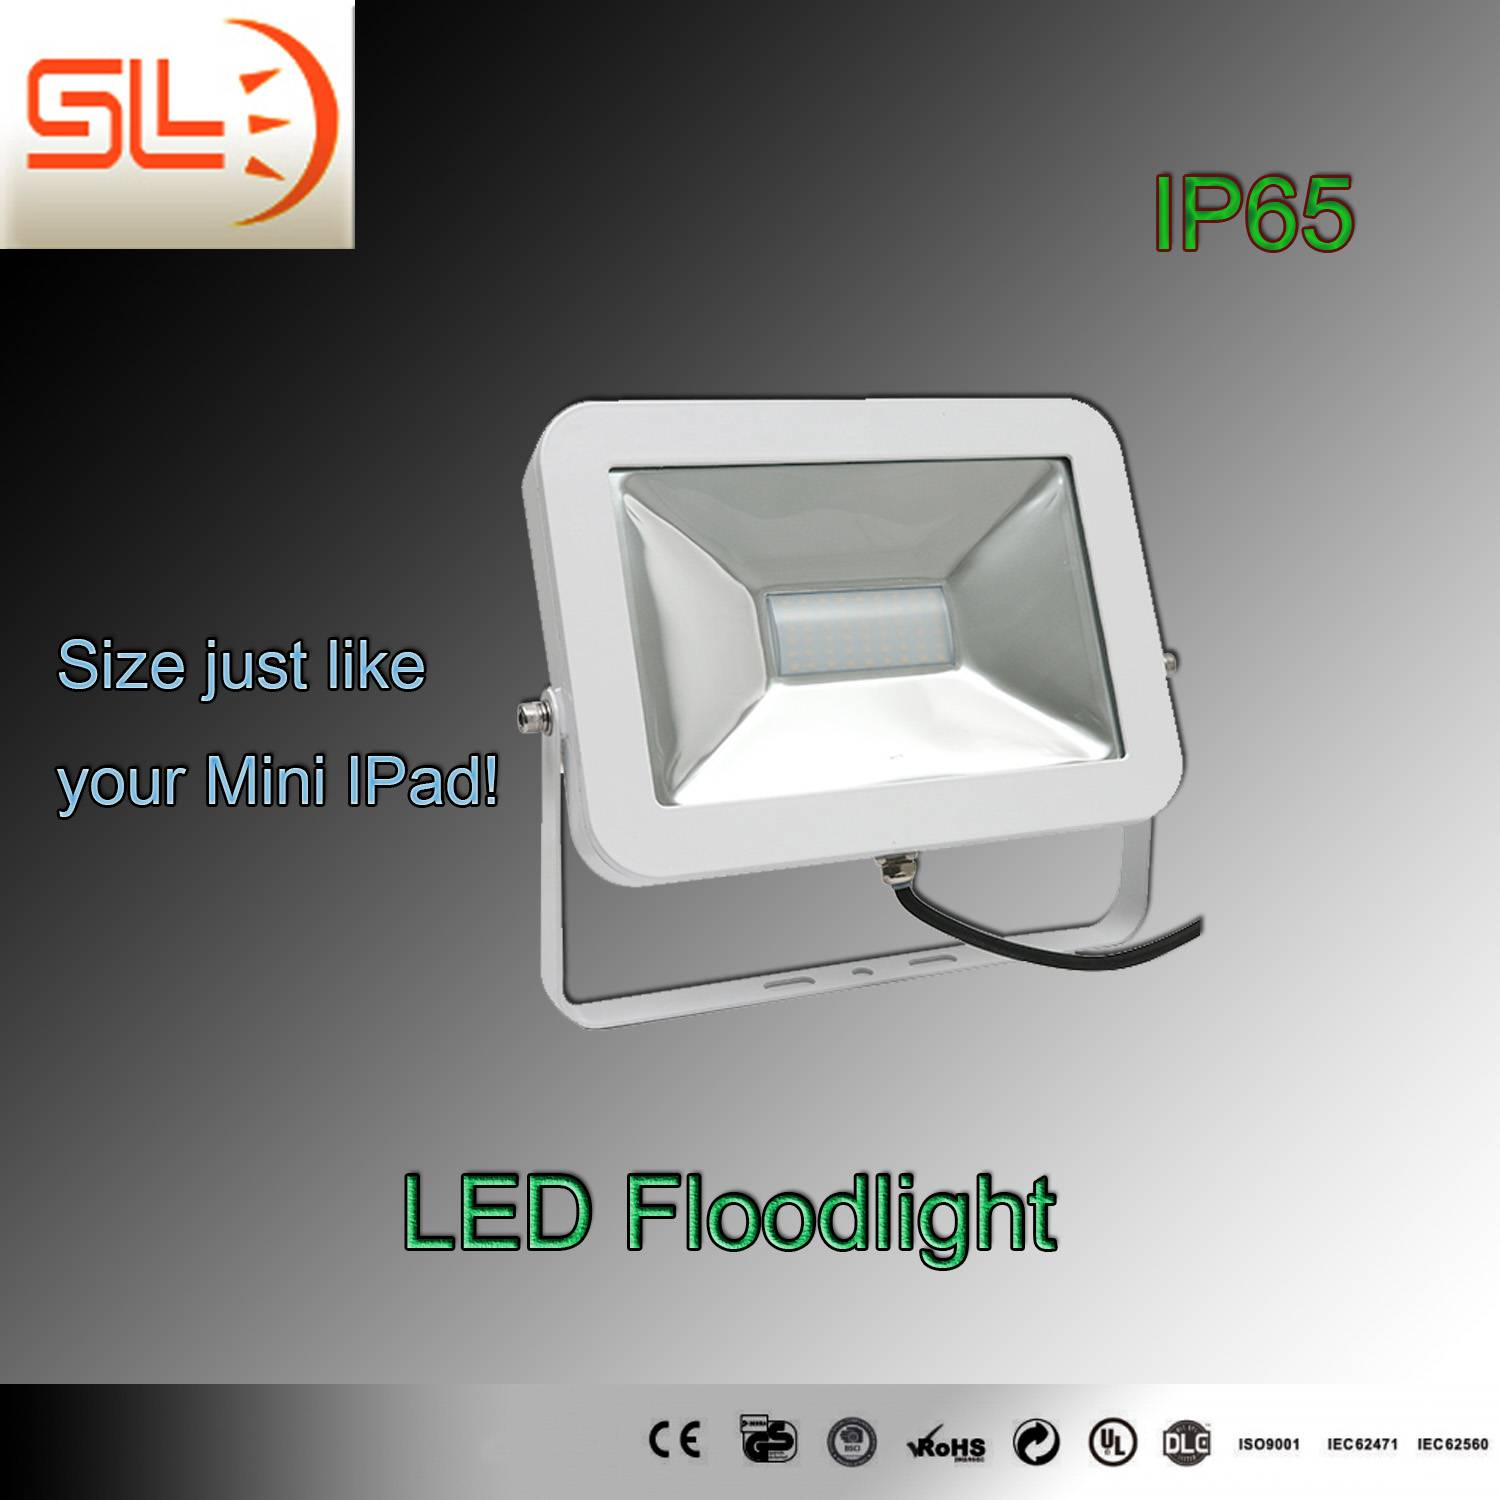 10W Mini iPad LED Floodlight with CE